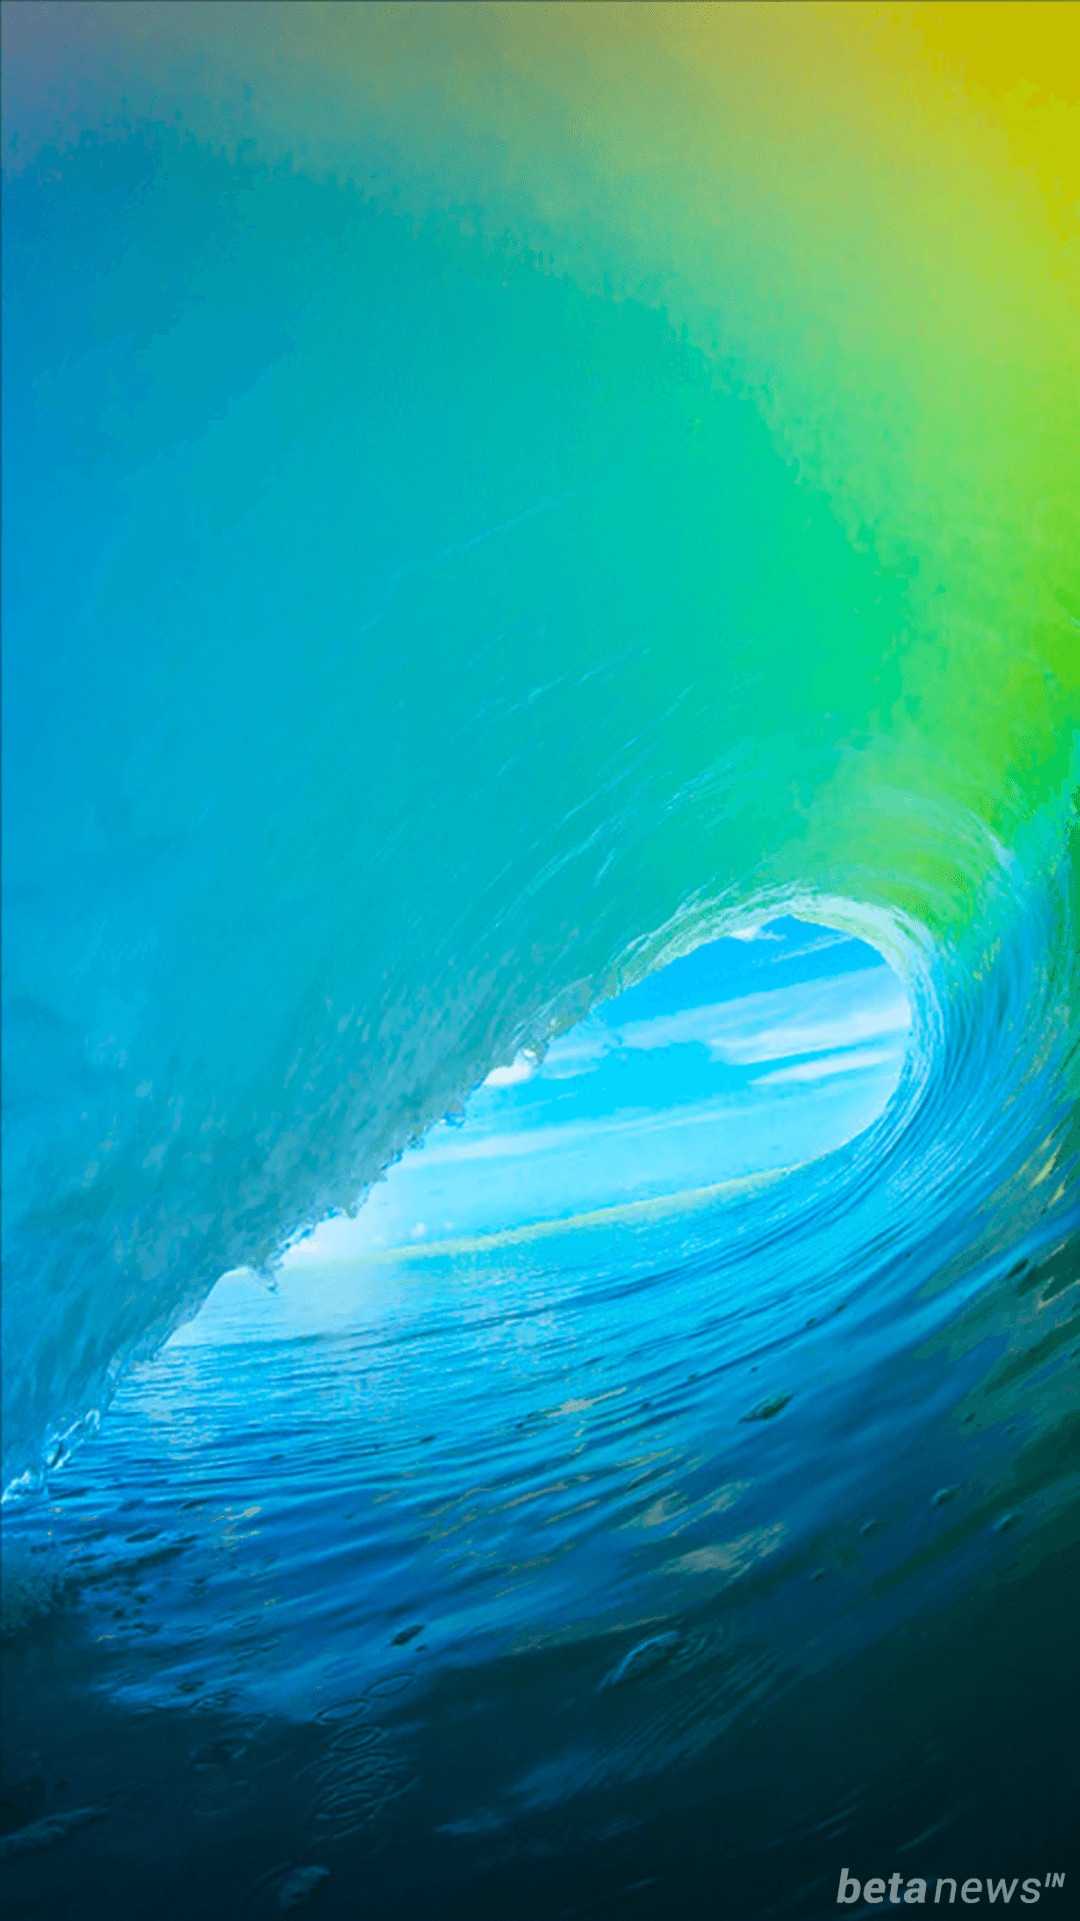 Download iOS 9 Stock Wallpapers for iPhone 6 (16 Wallpapers Pack)